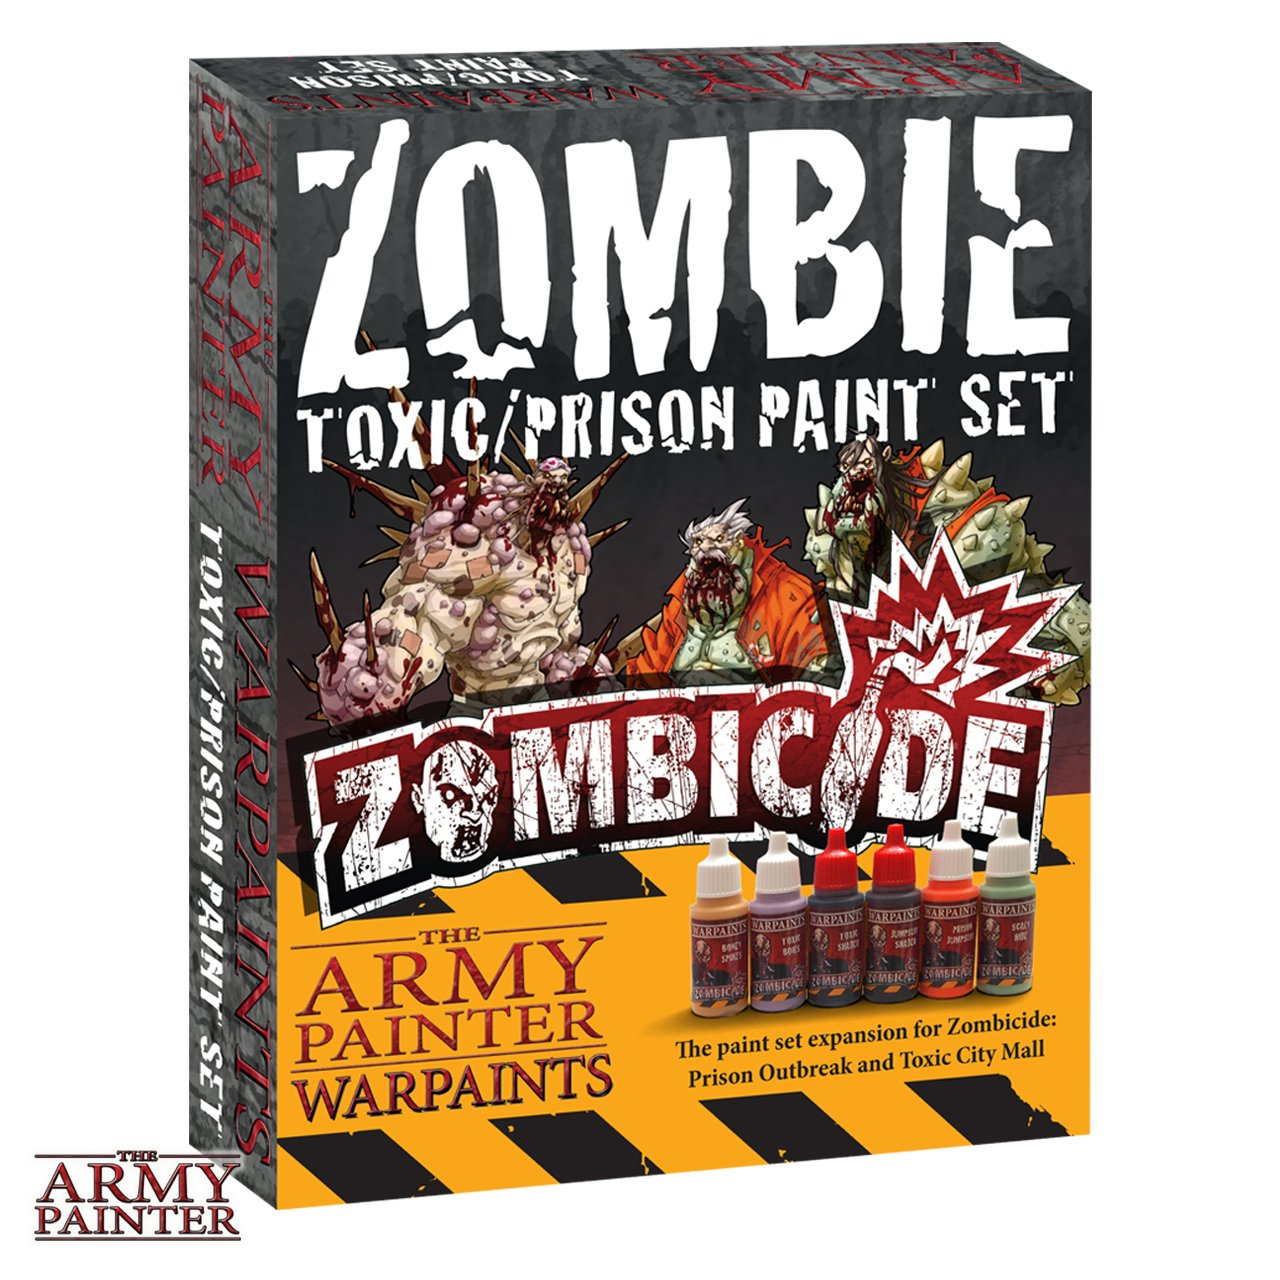 Zombicide Paint Set for Zombicide Prison Outbreak and Toxic City Mall Board Games - Zombie Miniature Paint Set - Zombie Paint Kit of 6 Essential Paints - The Army Painter Zombie Toxic/Prison Paint Set